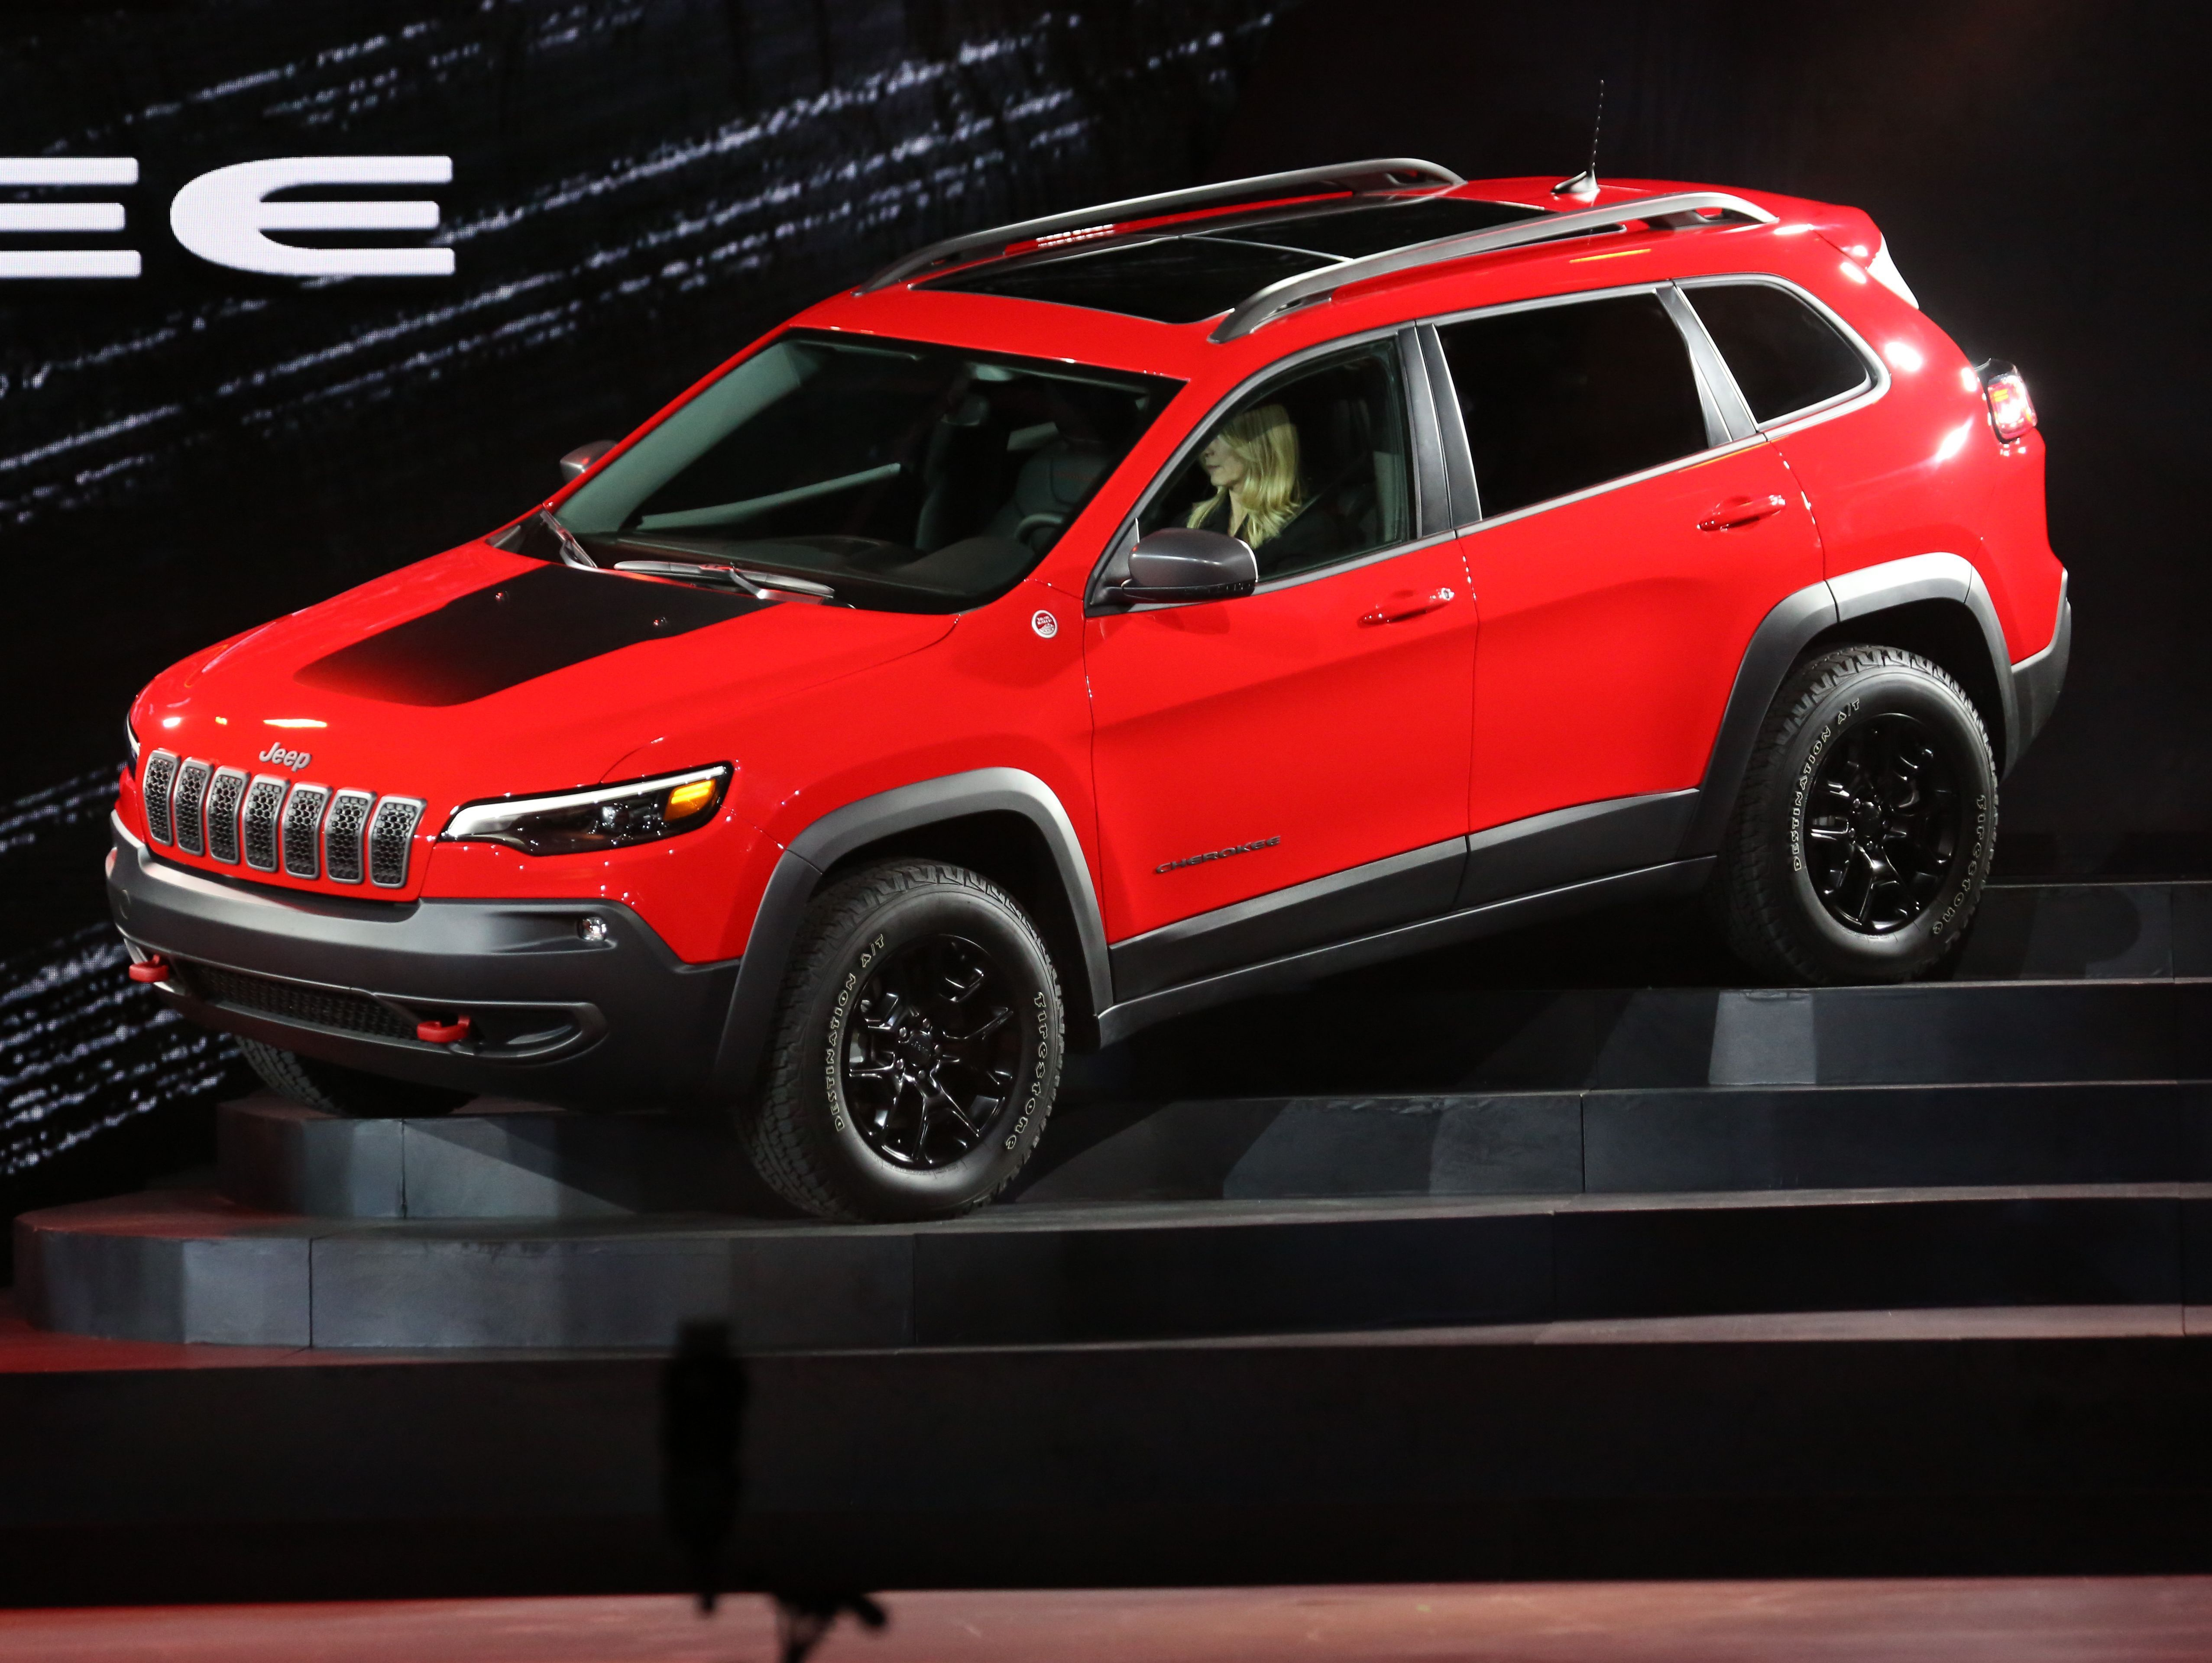 Knocking Down Barriers The First 2019 Jeep Cherokee Lifted In The World Mfc And Tcautoshow A Jeep Cherokee